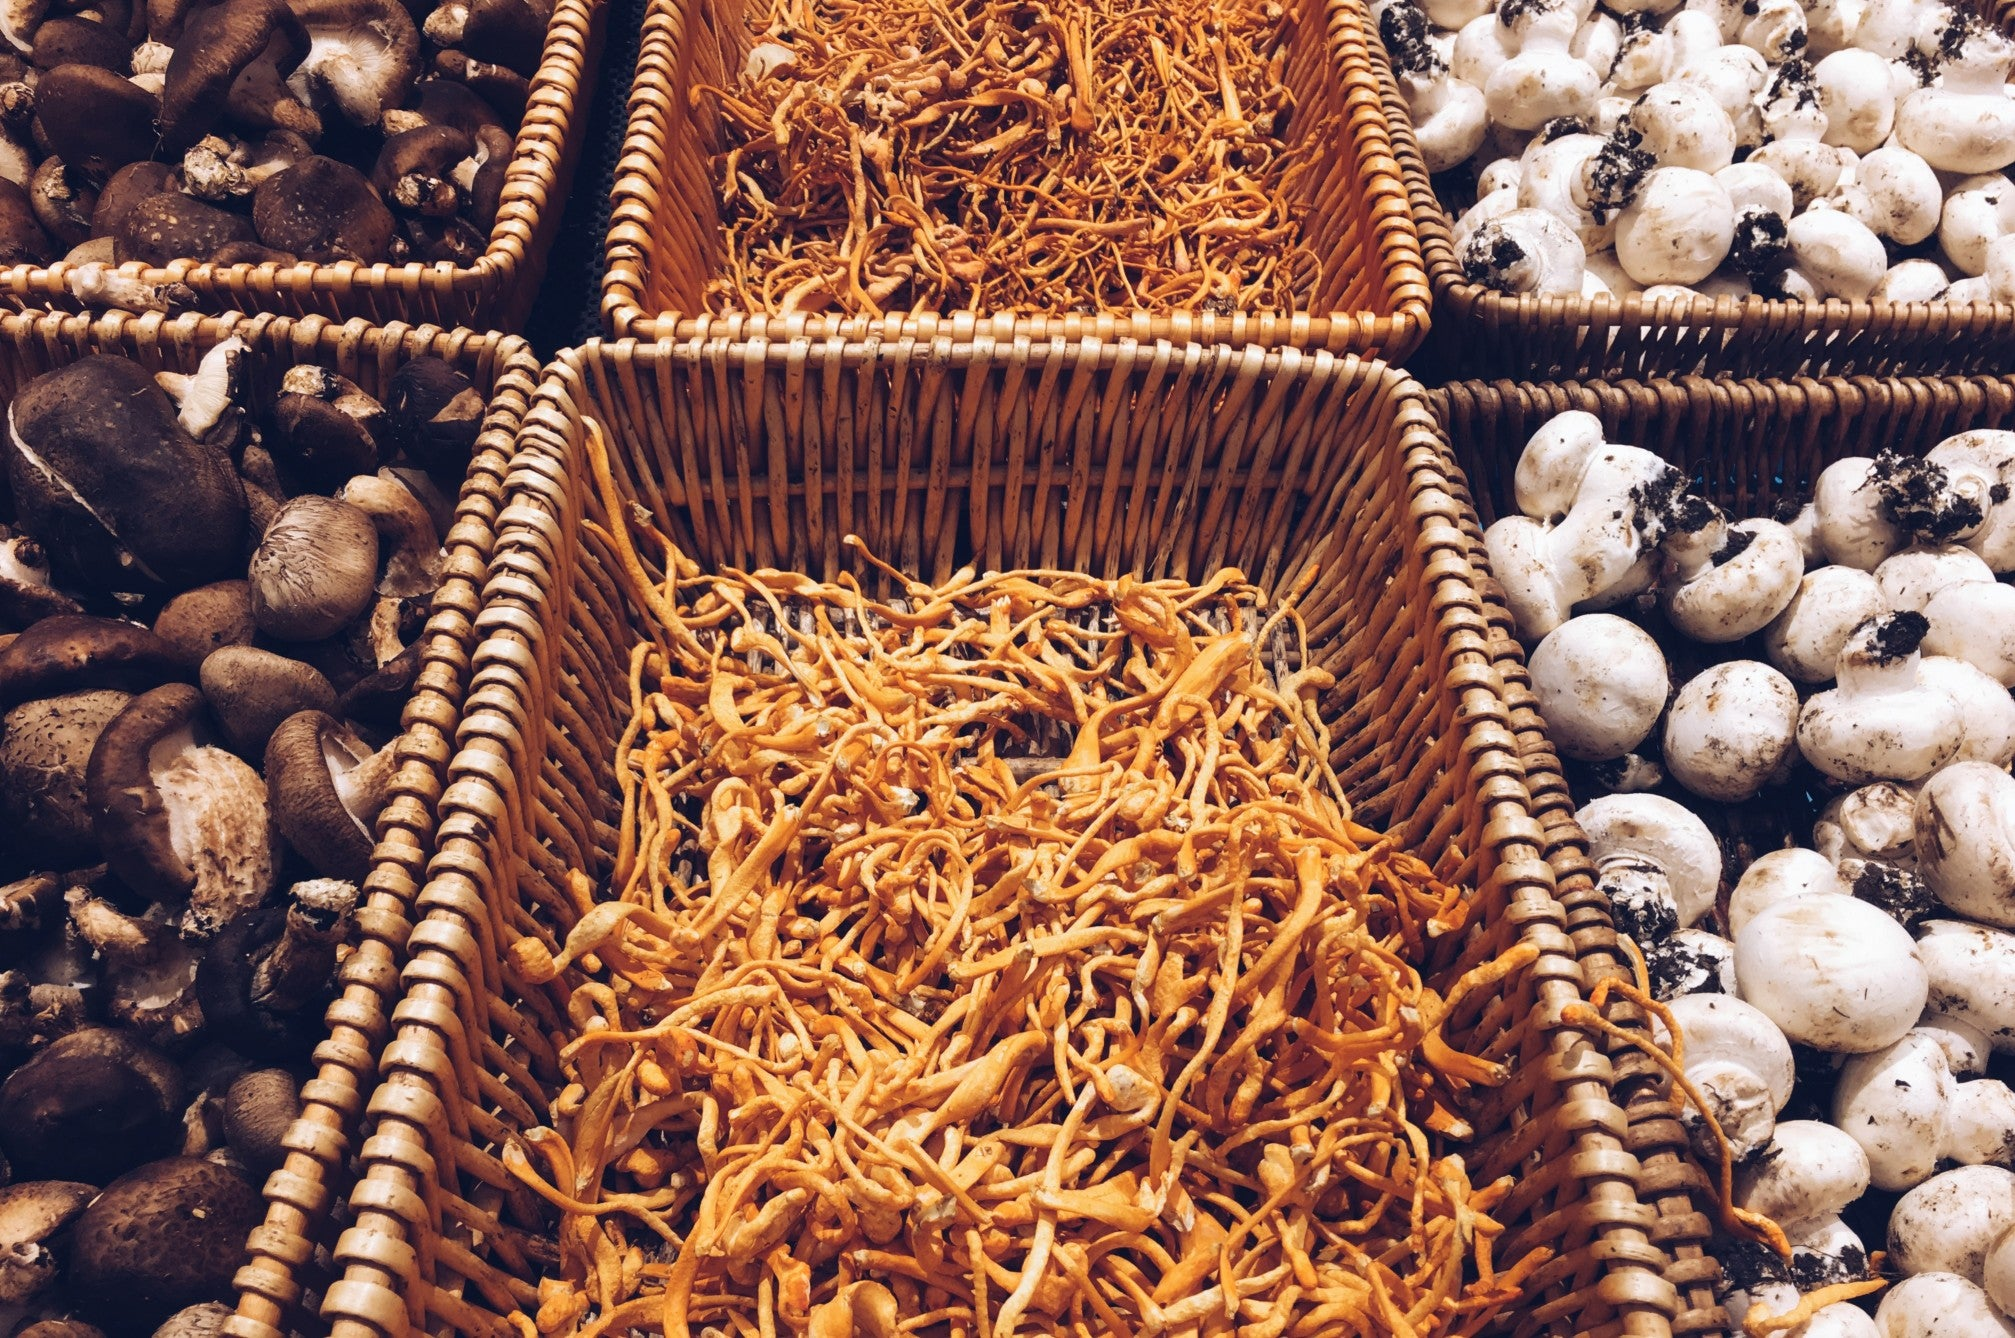 Cordycepts in a basket for sale, surrounded by other types of mushrooms in baskets